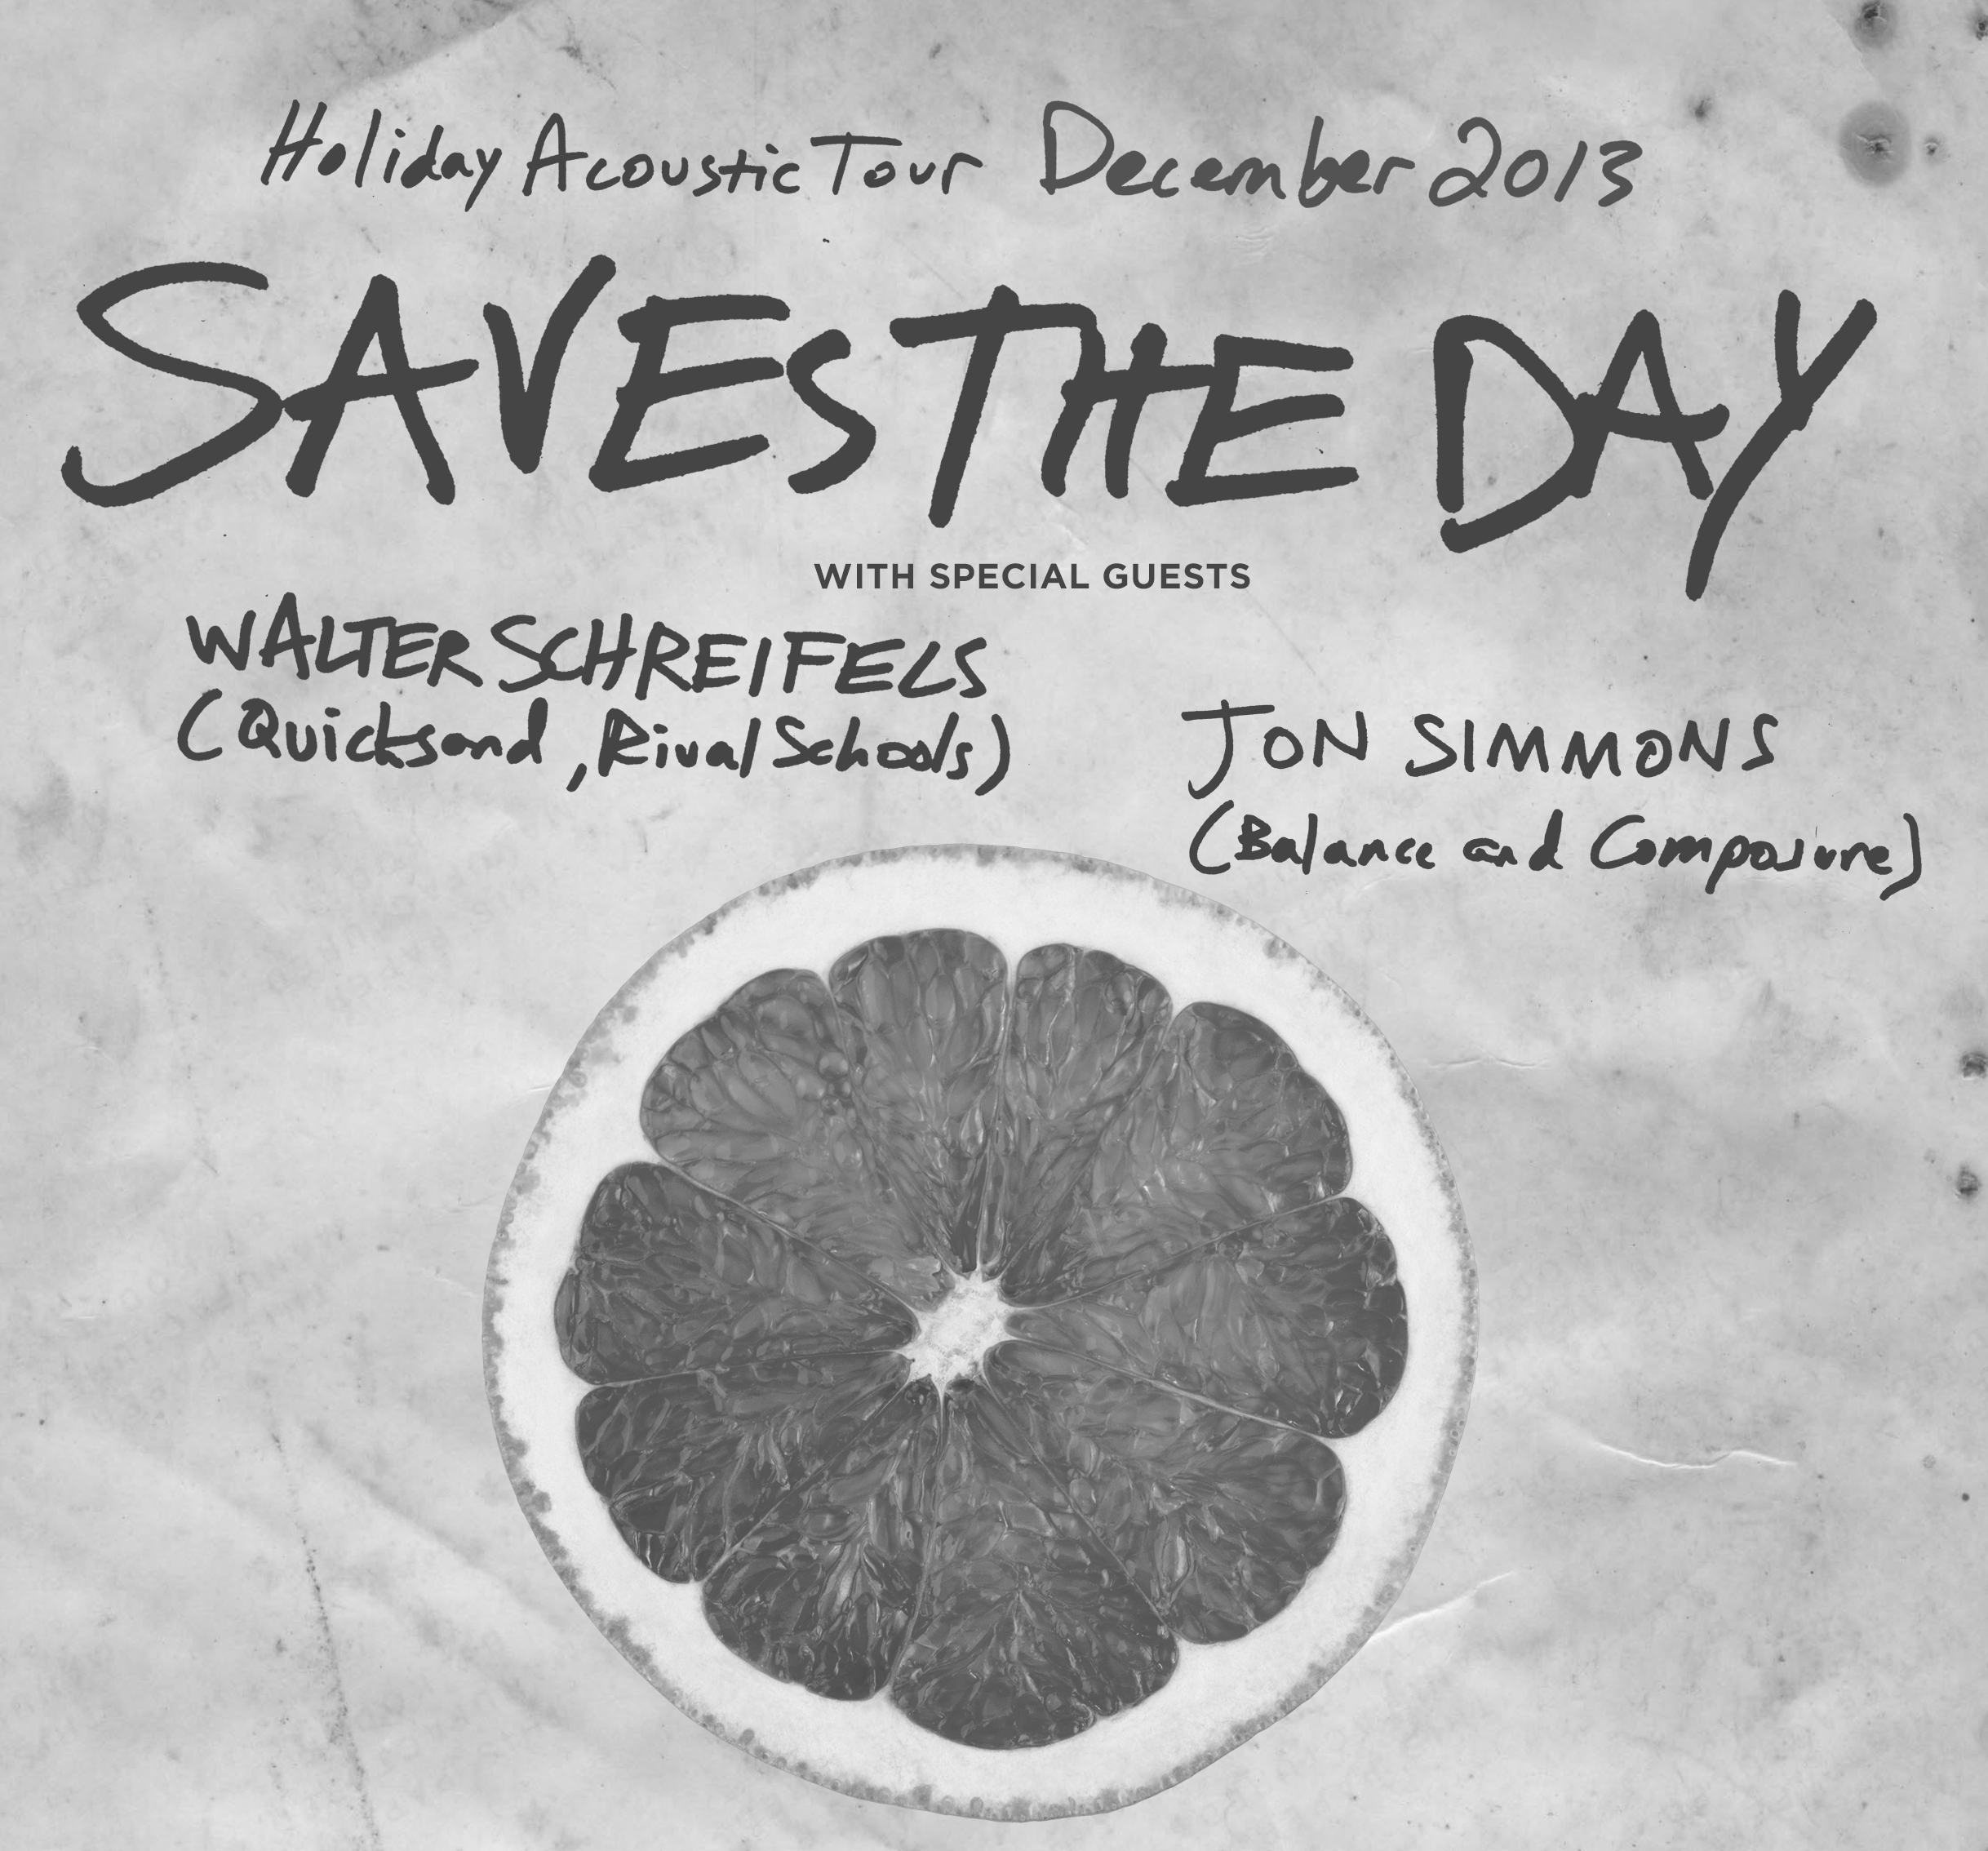 SAVES THE DAY * WALTER SCHREIFELS (QUICKSAND) * JON SIMMONS (BALANCE AND COMPOSURE)